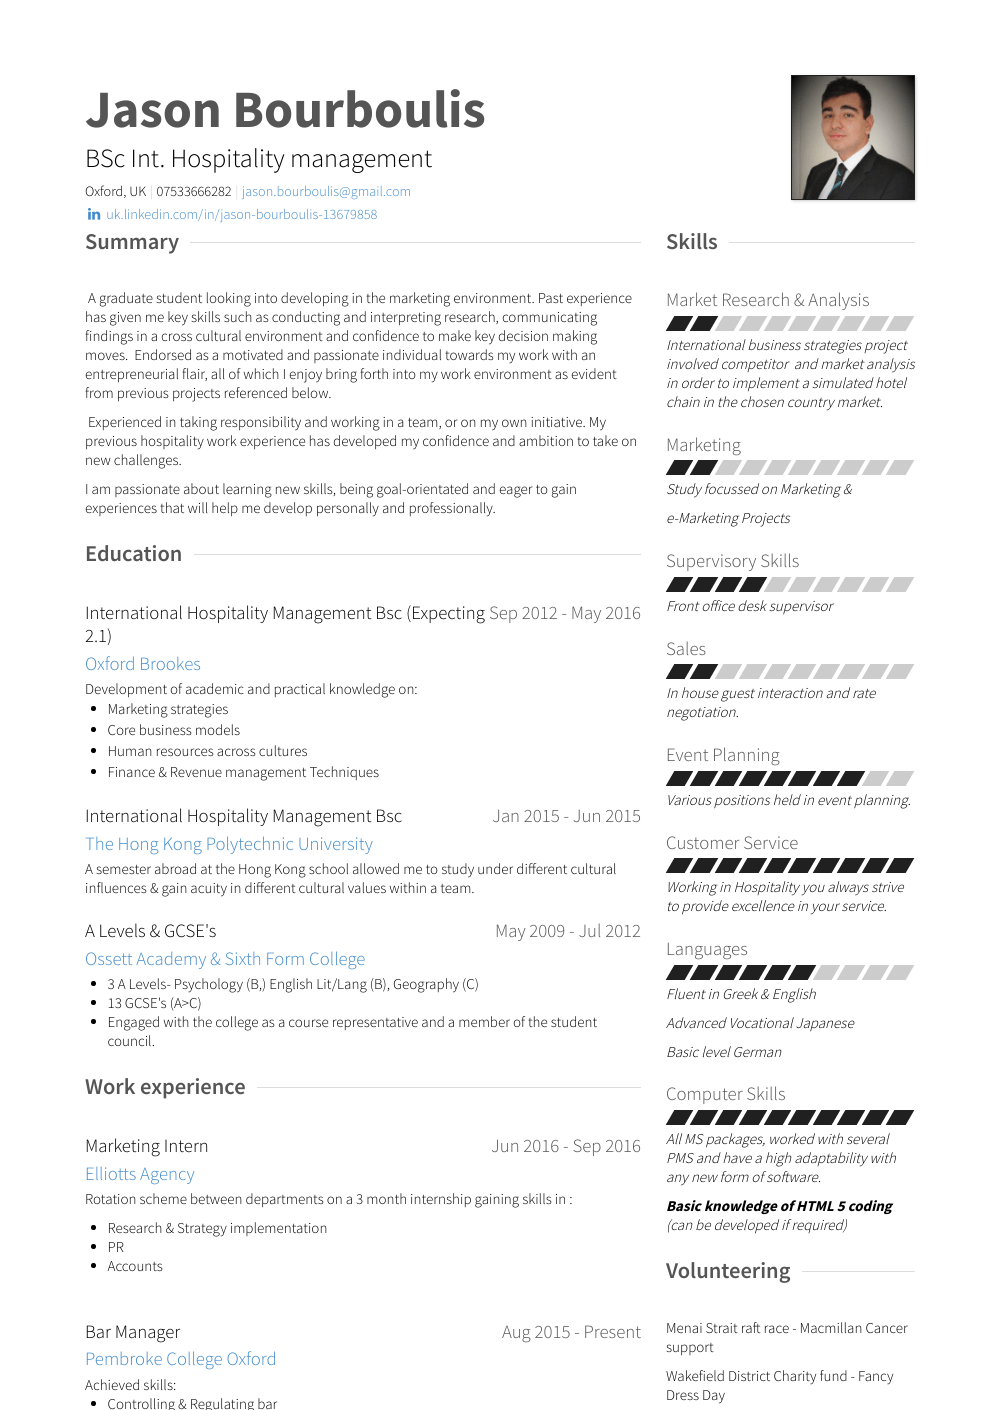 Bar Manager Resume Samples And Templates Visualcv